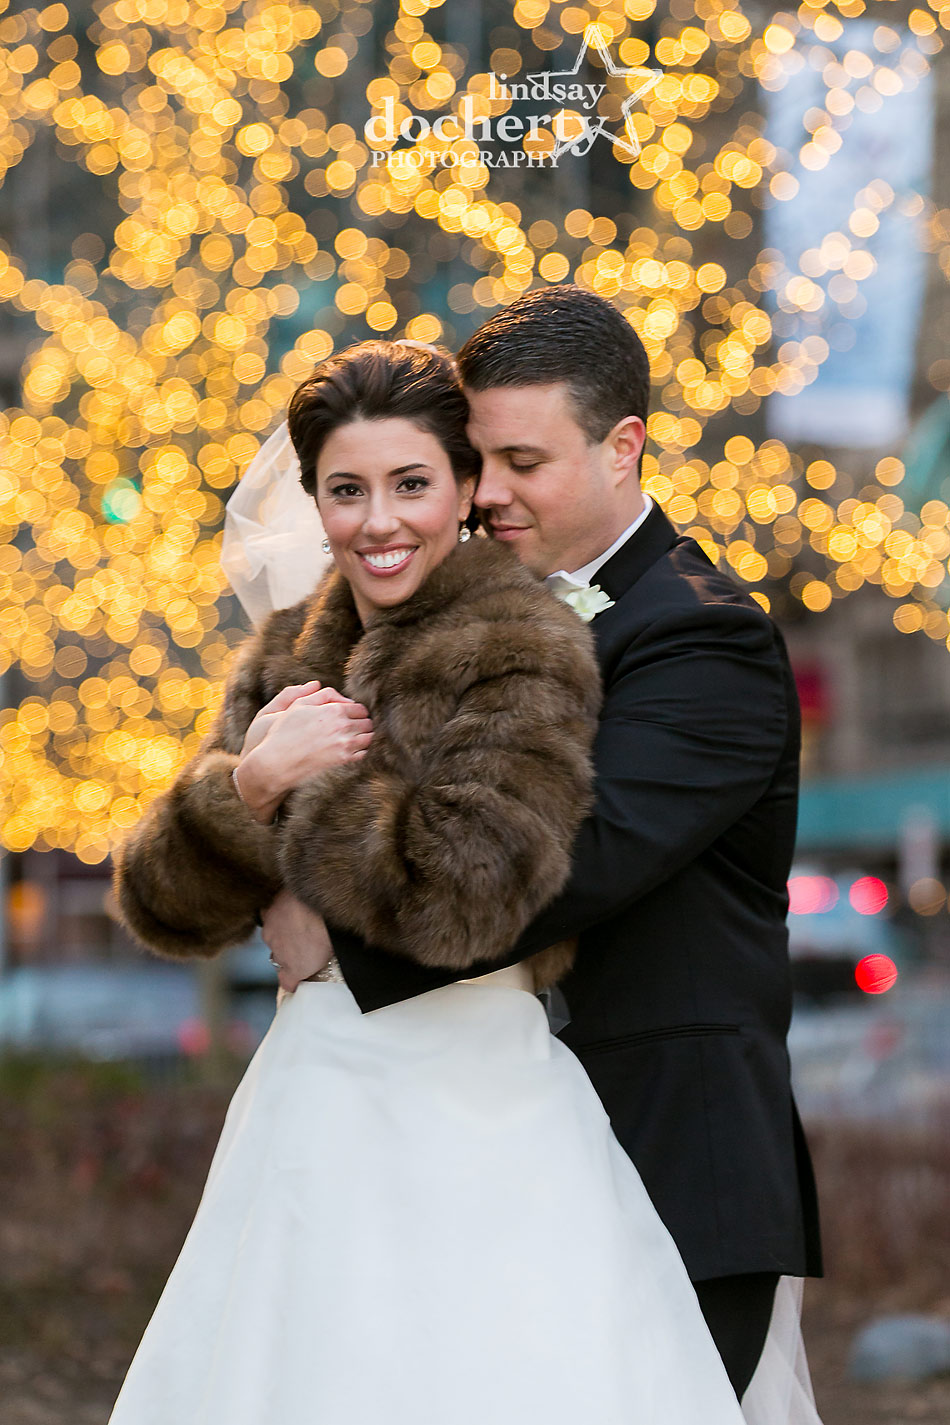 bride-and-groom-pictures-at-Dilworth-Plaza-with-lights